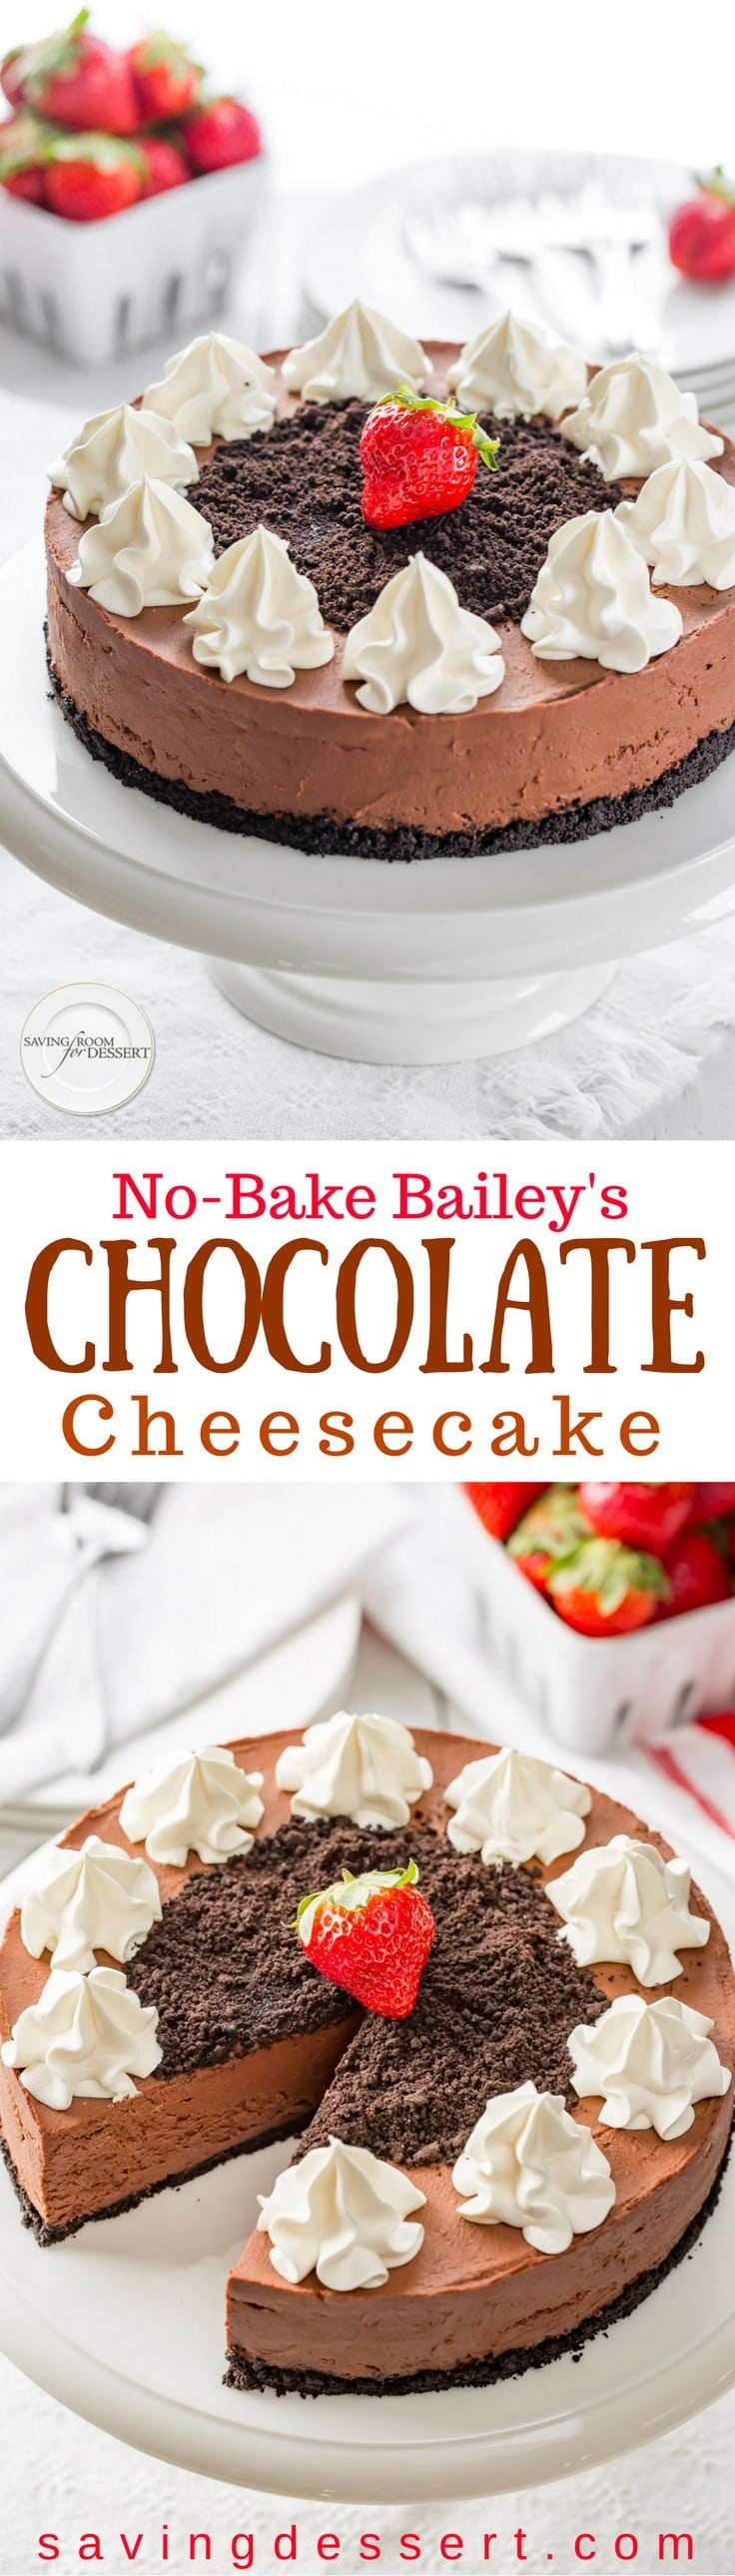 No-Bake Baileys Chocolate Cheesecake with a chocolate cookie crust - this recipe couldn't be easier! I love the tanginess in this Bailey's Cheesecake along with the great silky texture, subtle richness and the intense chocolate flavor that adds a luxurious flair to this no-bake dessert. www.savingdessert.com #savingroomfordessert #cheesecake #nobakecheesecake #Baileyschocolatecheesecake #chocolatecheesecake #dessert #nobake #baileys #bailey's